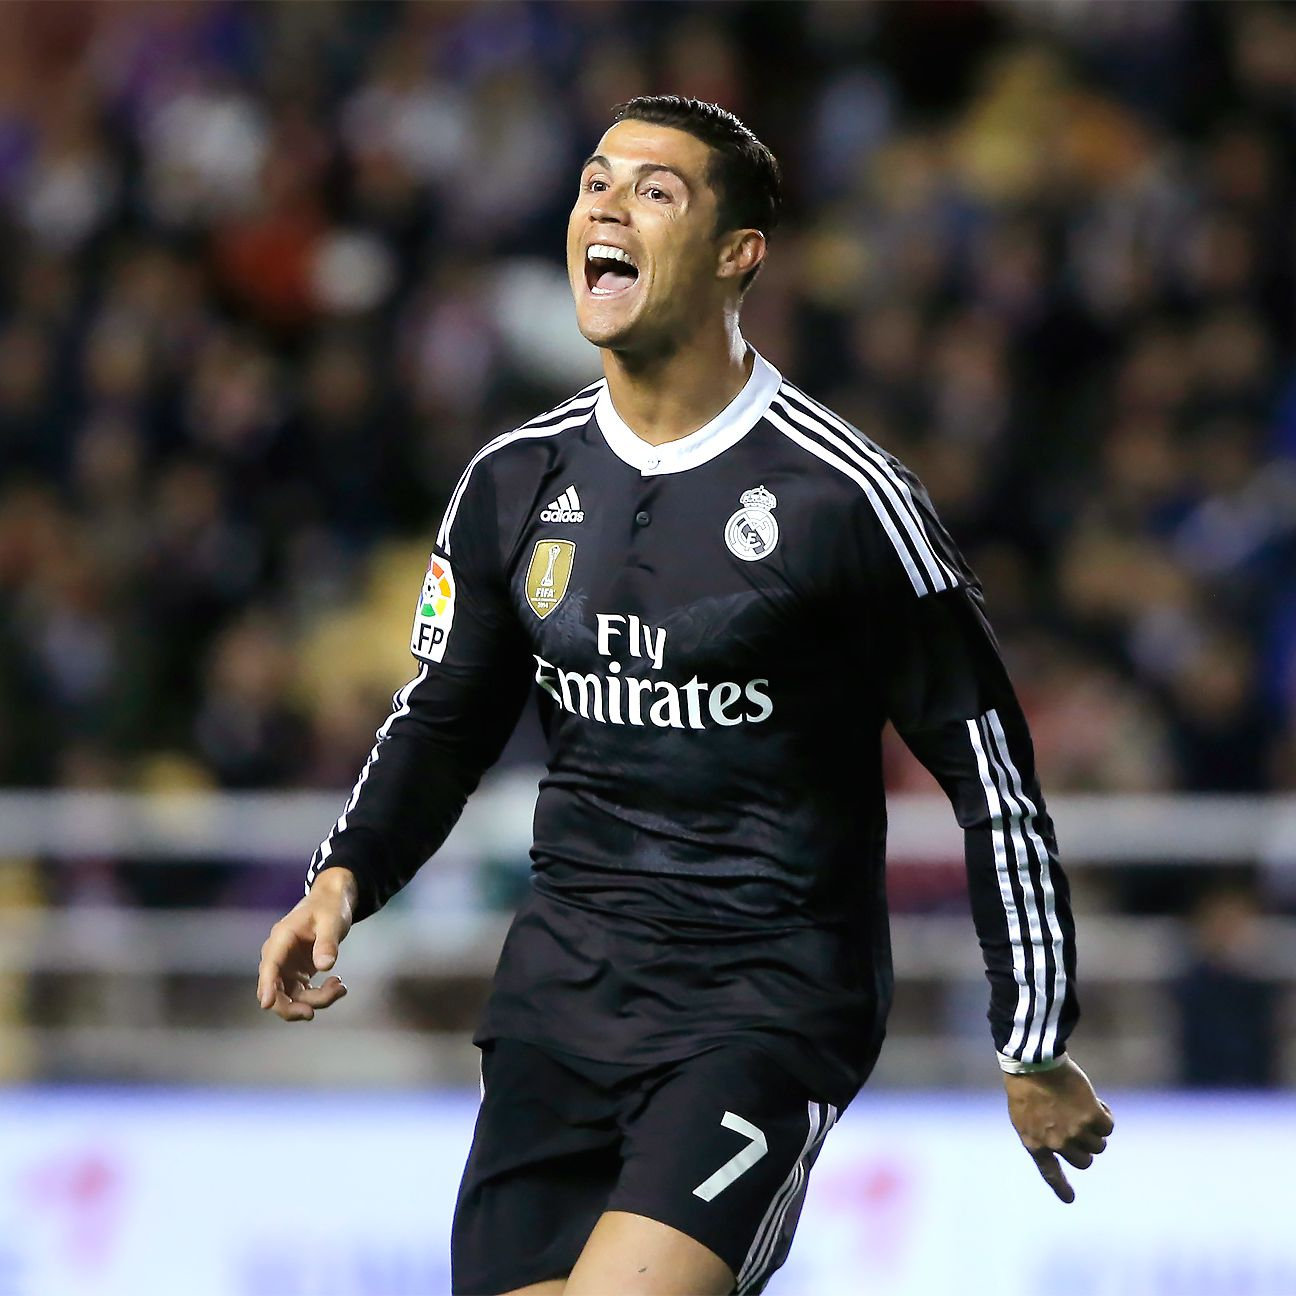 Cristiano Ronaldo and Real Madrid headline Group A along with PSG.